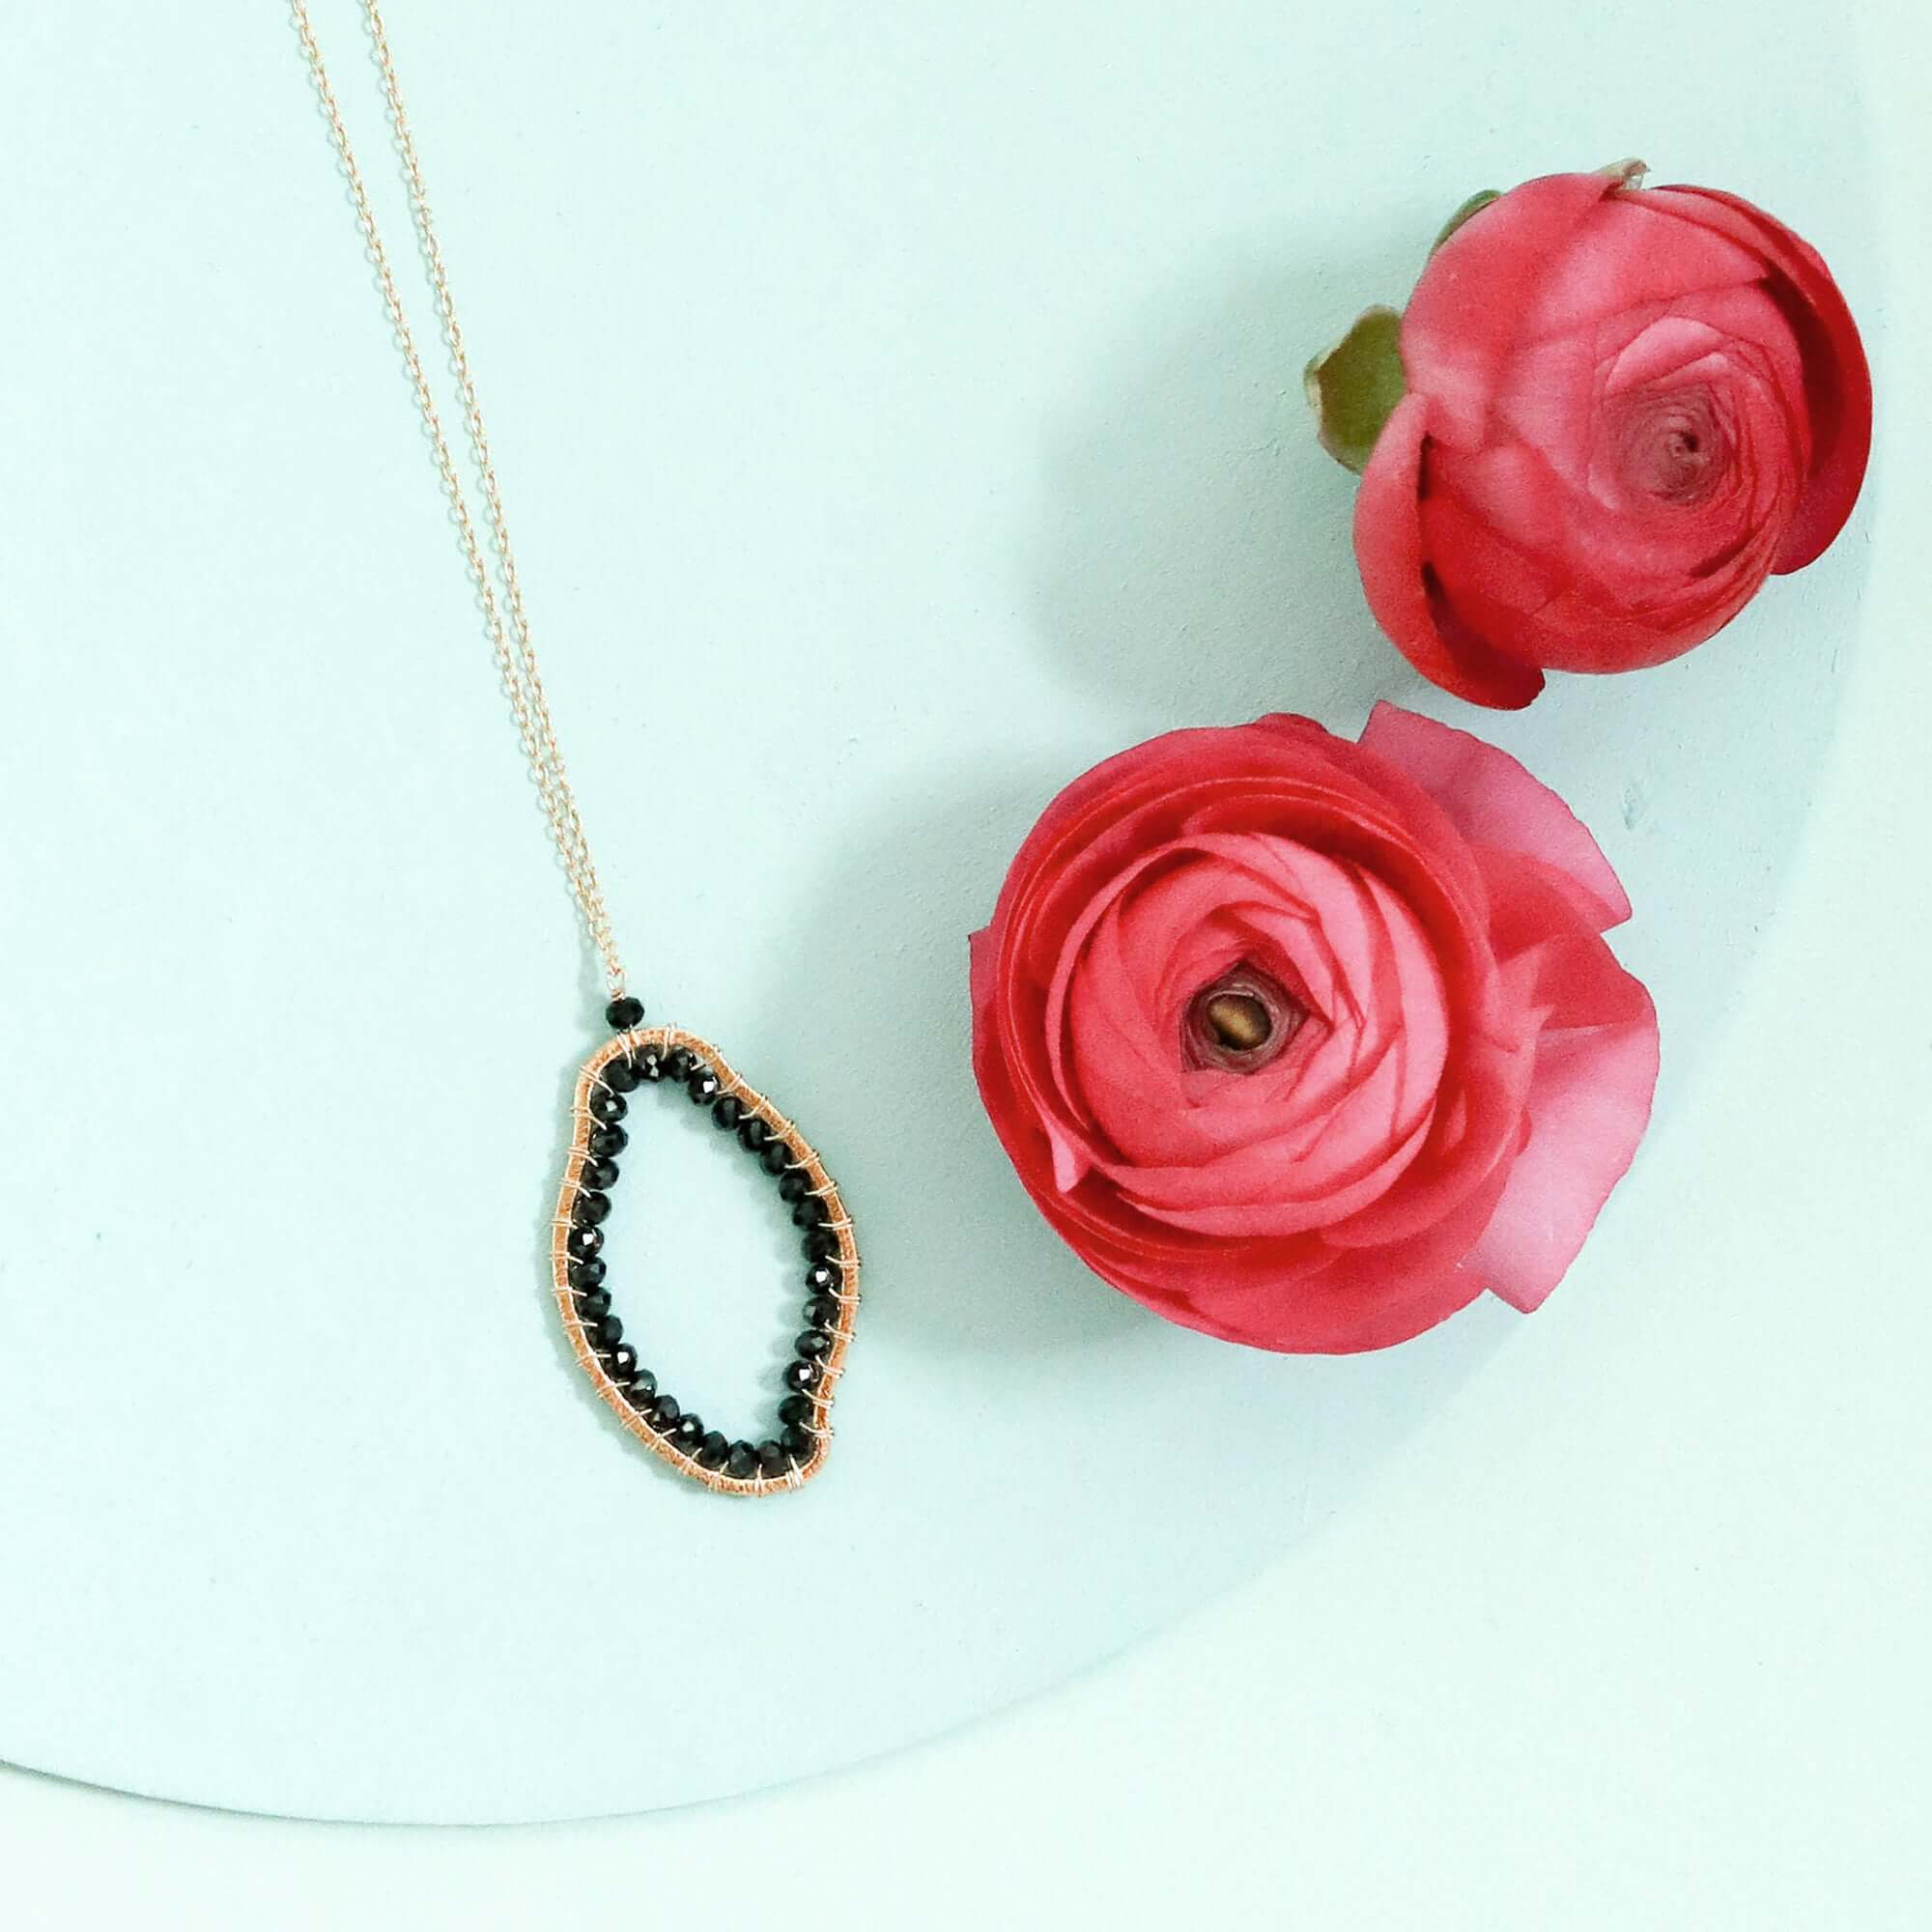 h products by spinel img melissa pearlfection gorga envy necklace spinelynecklacebypearlfectionbyhl y l